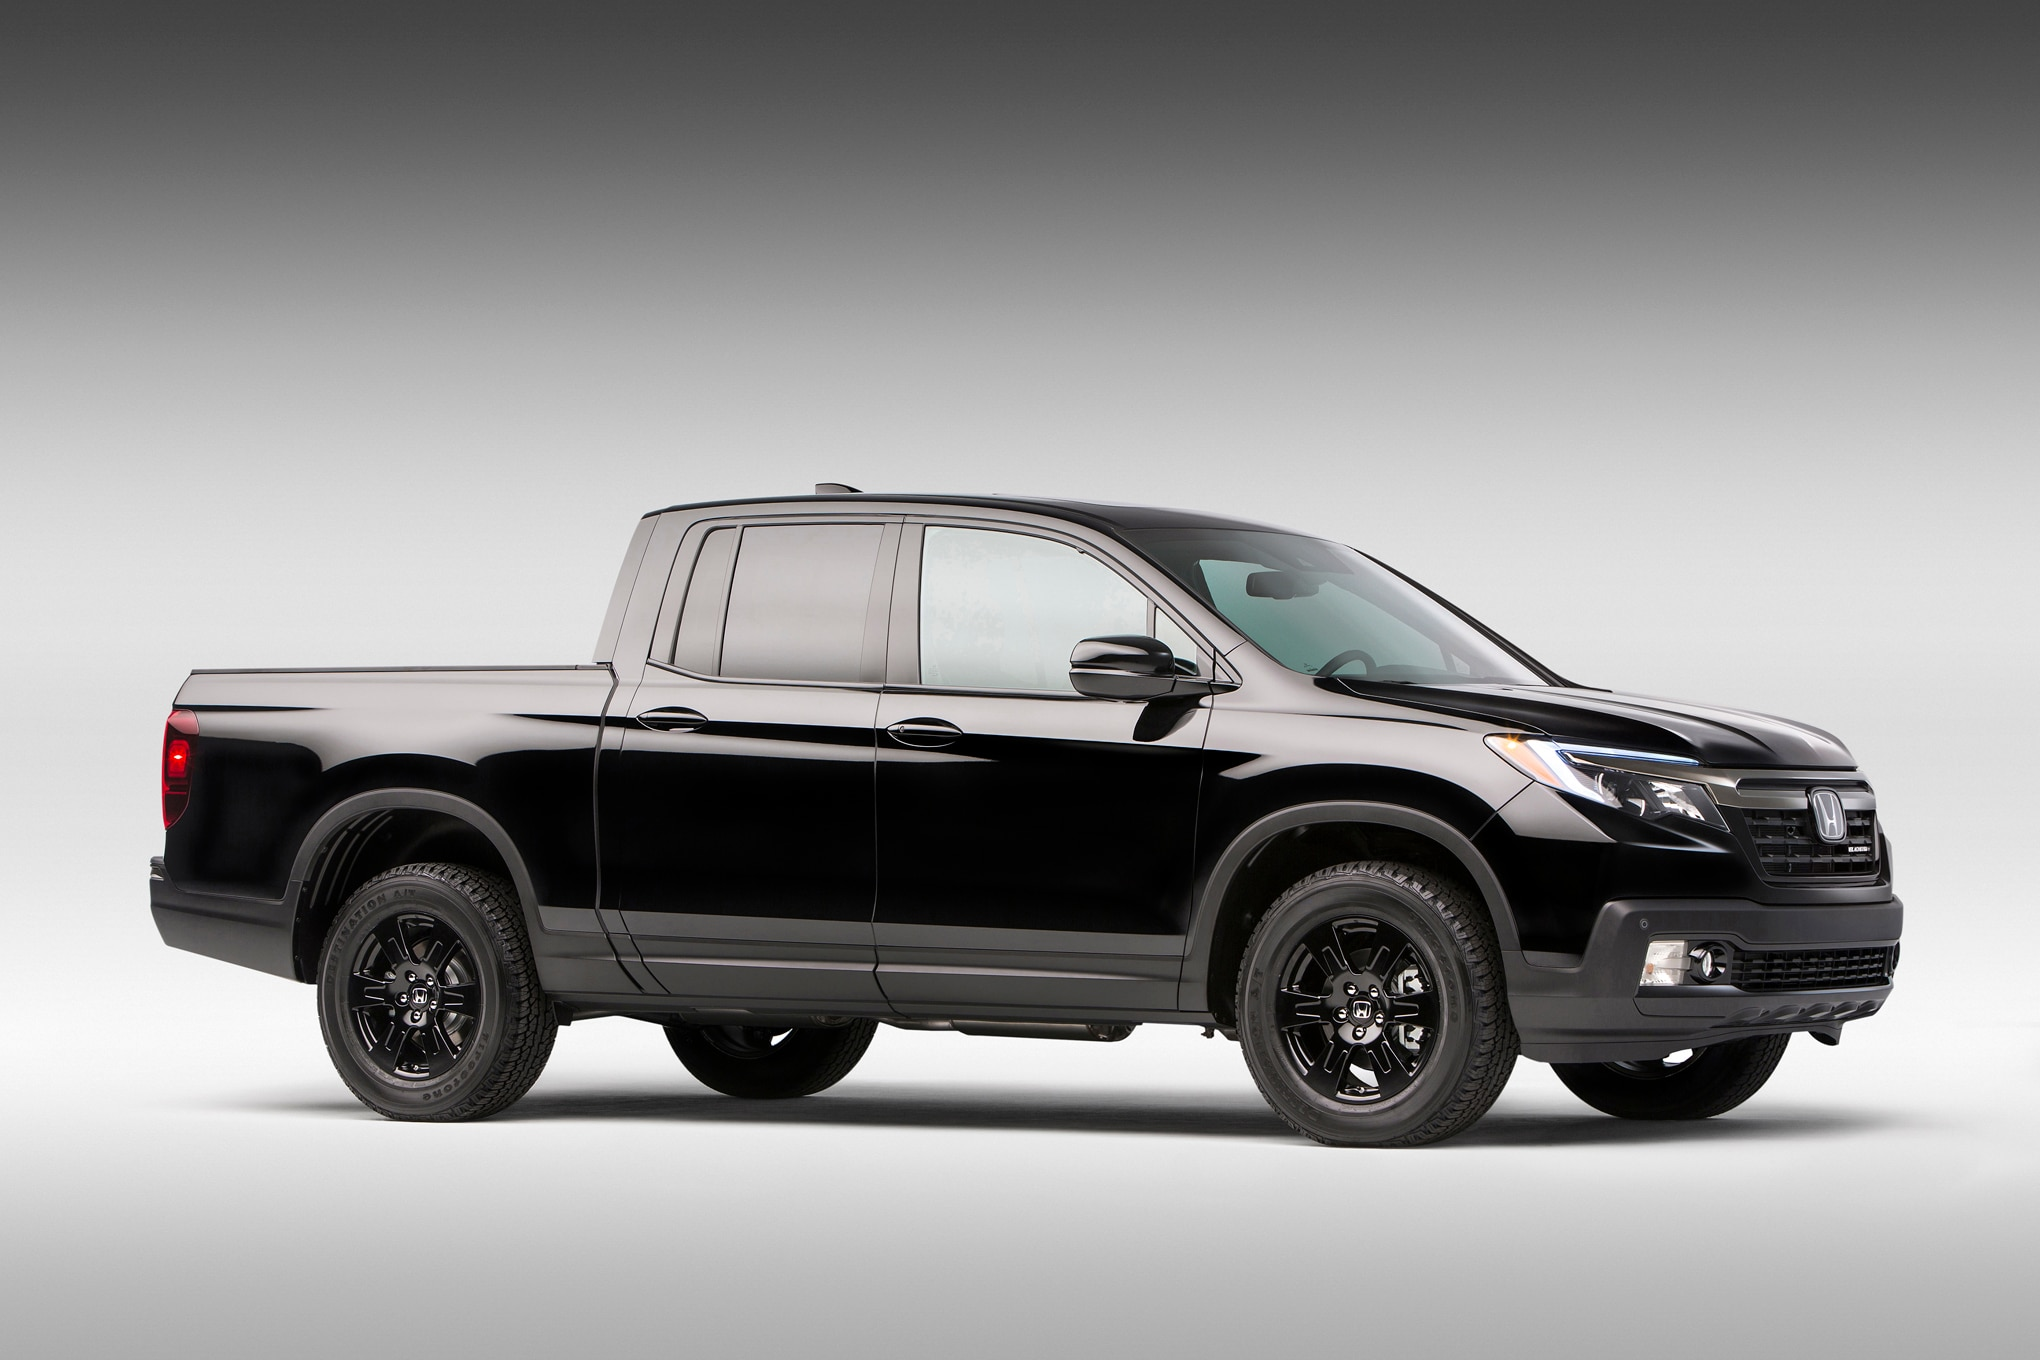 Best small trucks for gas mileage - Show More